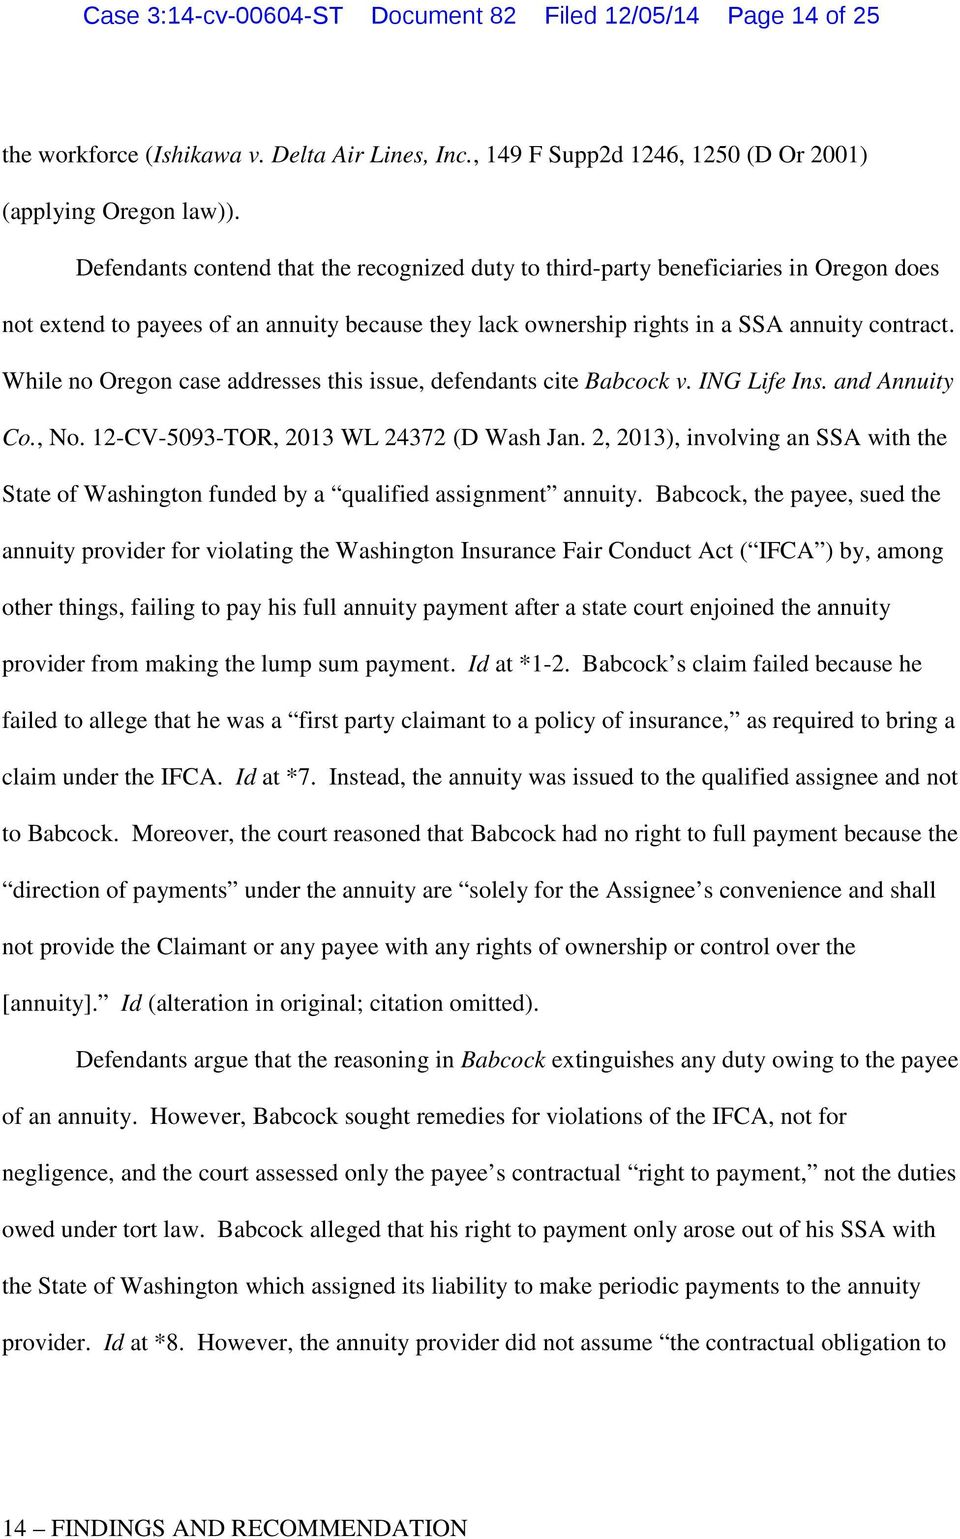 While no Oregon case addresses this issue, defendants cite Babcock v. ING Life Ins. and Annuity Co., No. 12-CV-5093-TOR, 2013 WL 24372 (D Wash Jan.